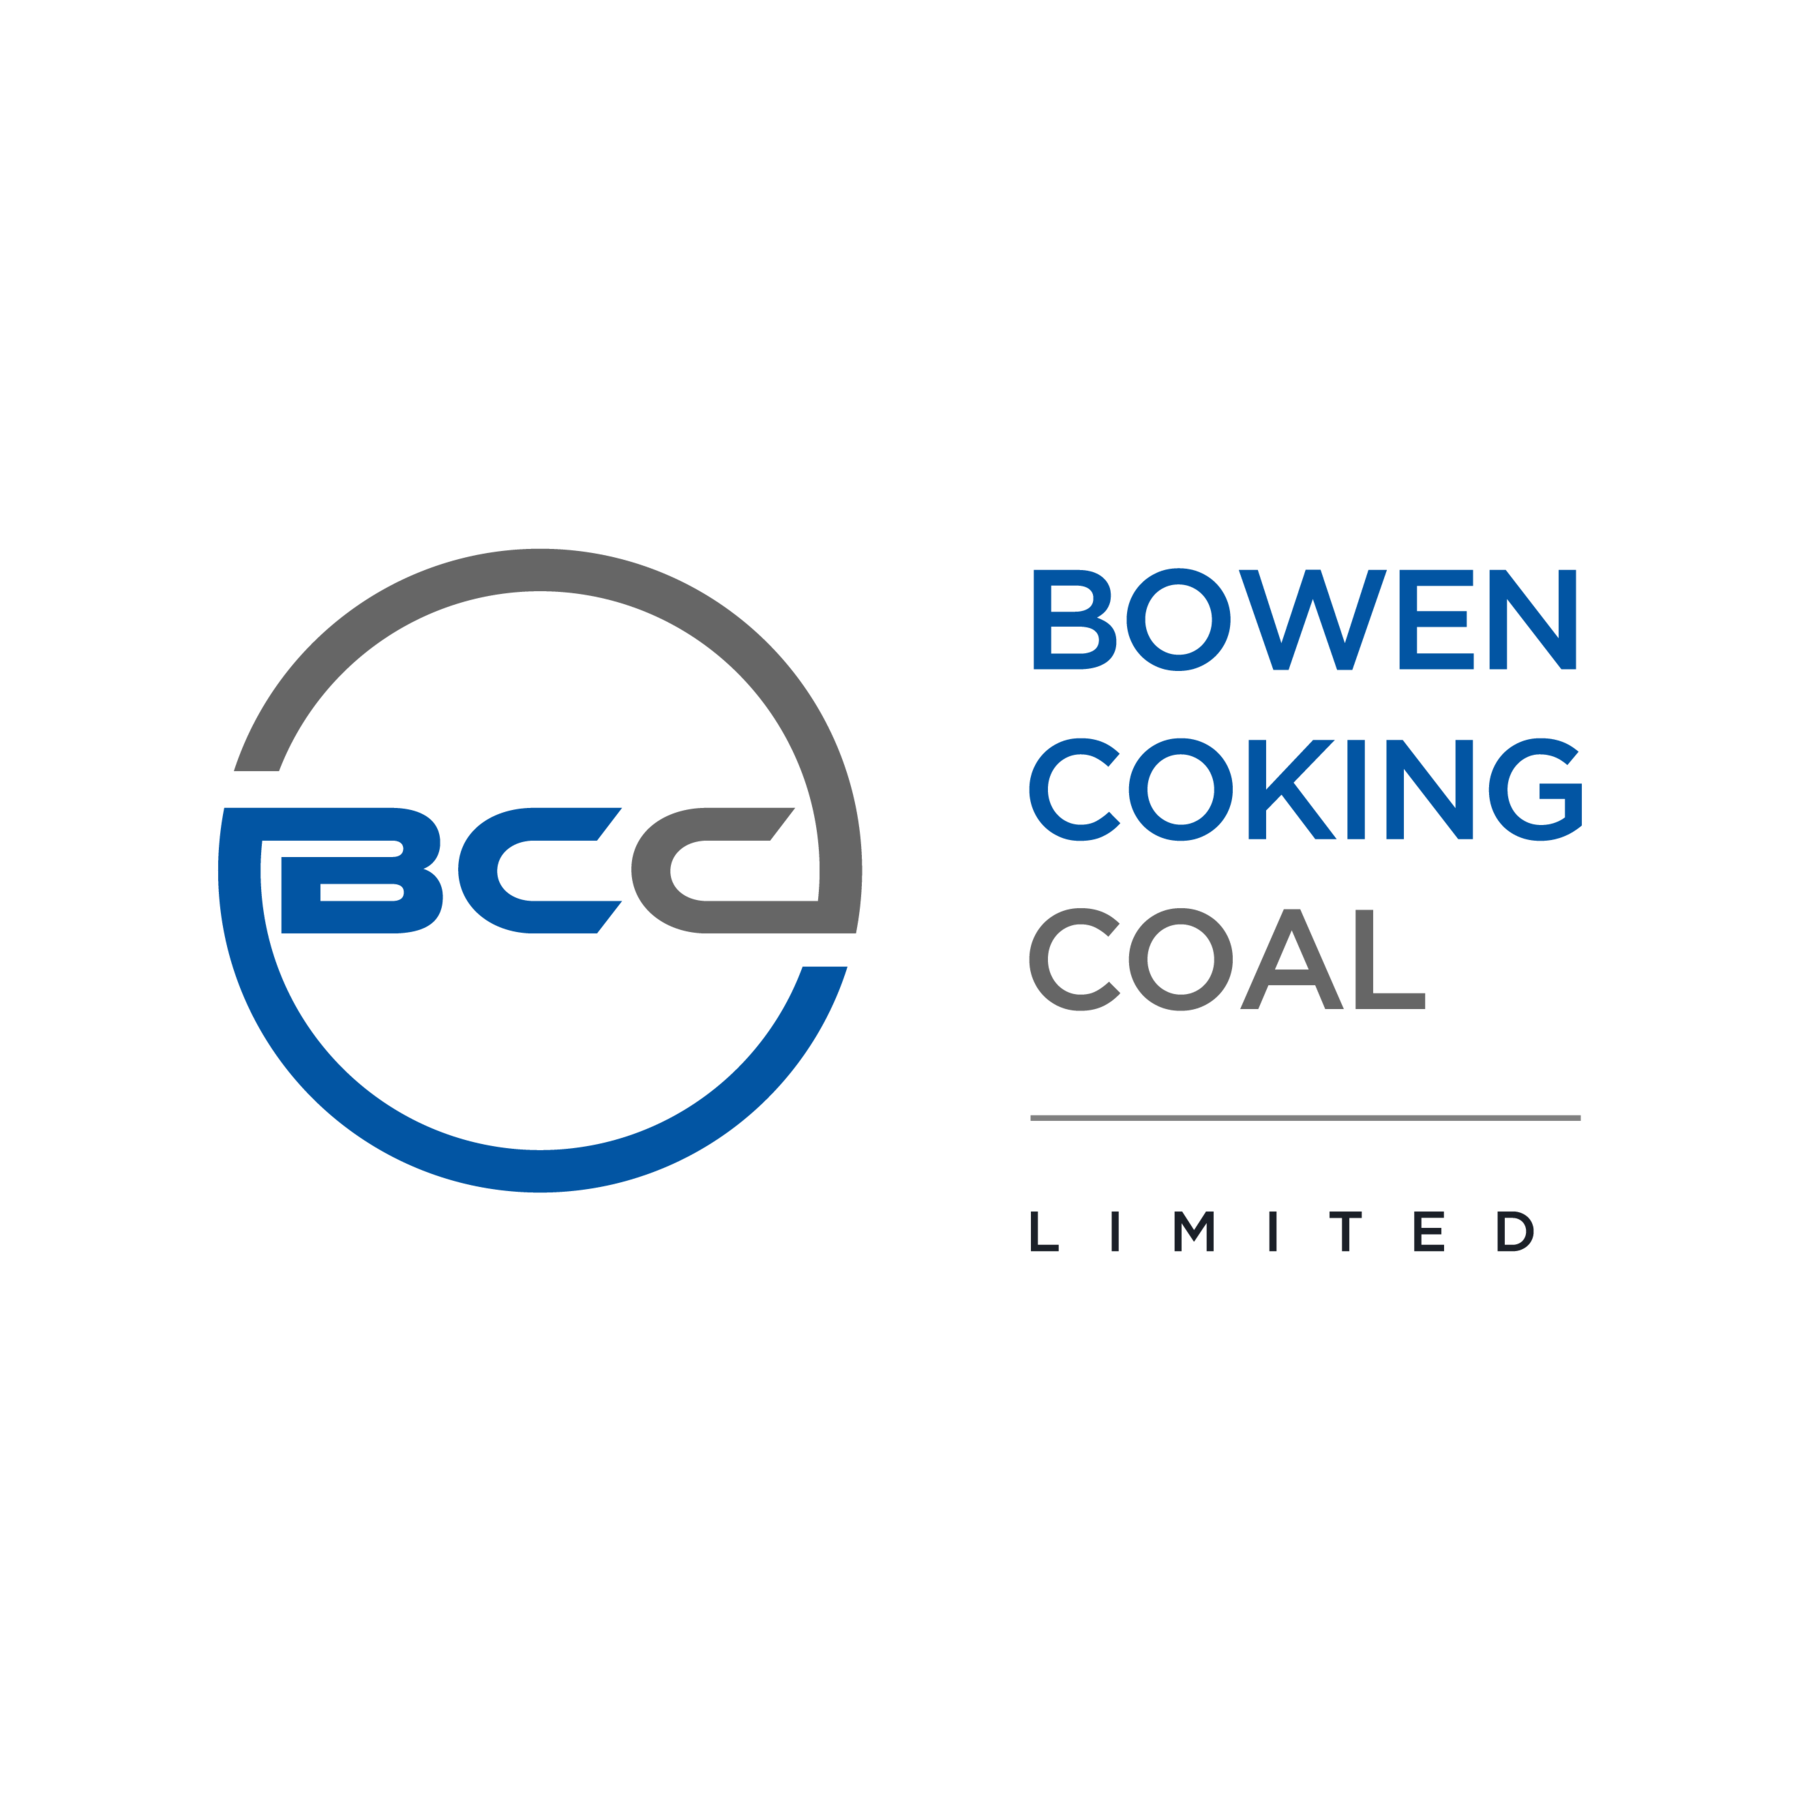 BOWEN COKING COAL LIMITED